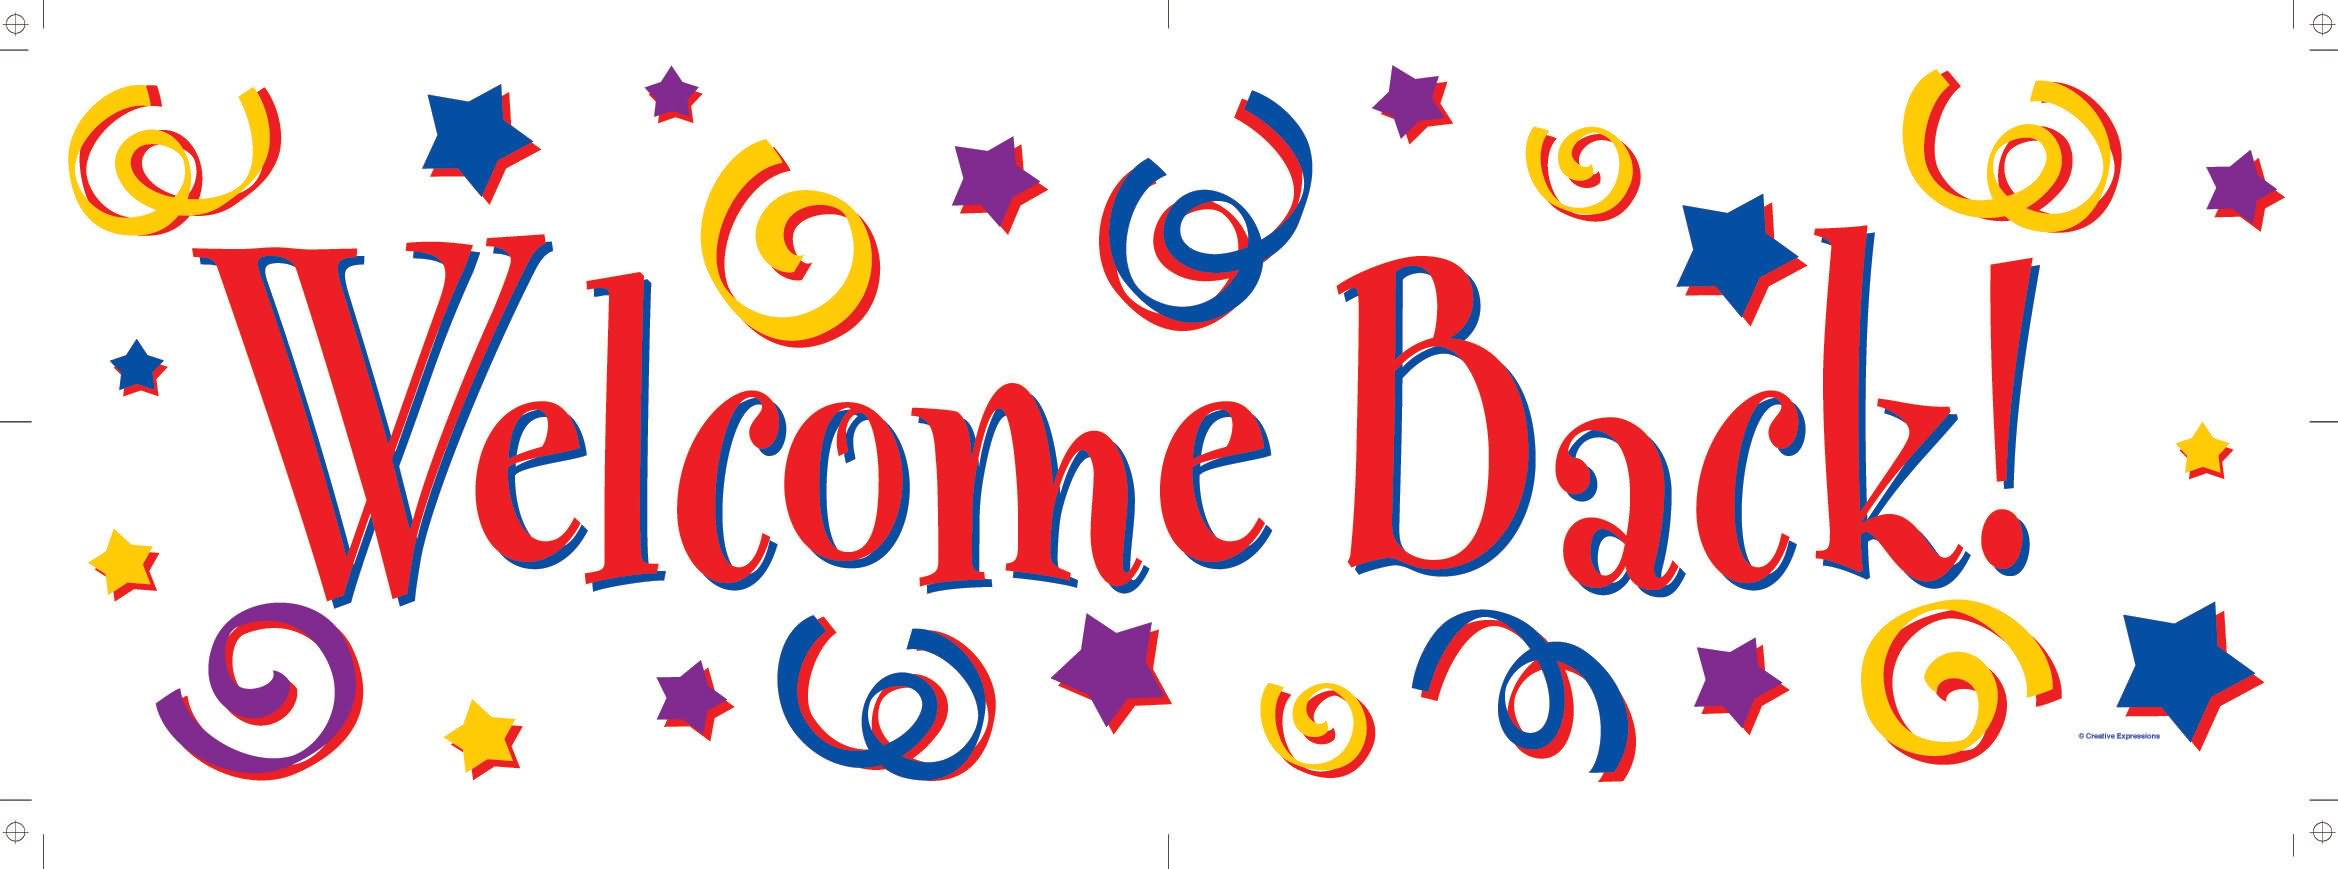 Welcome to our church clipart - Clip Art Welcome